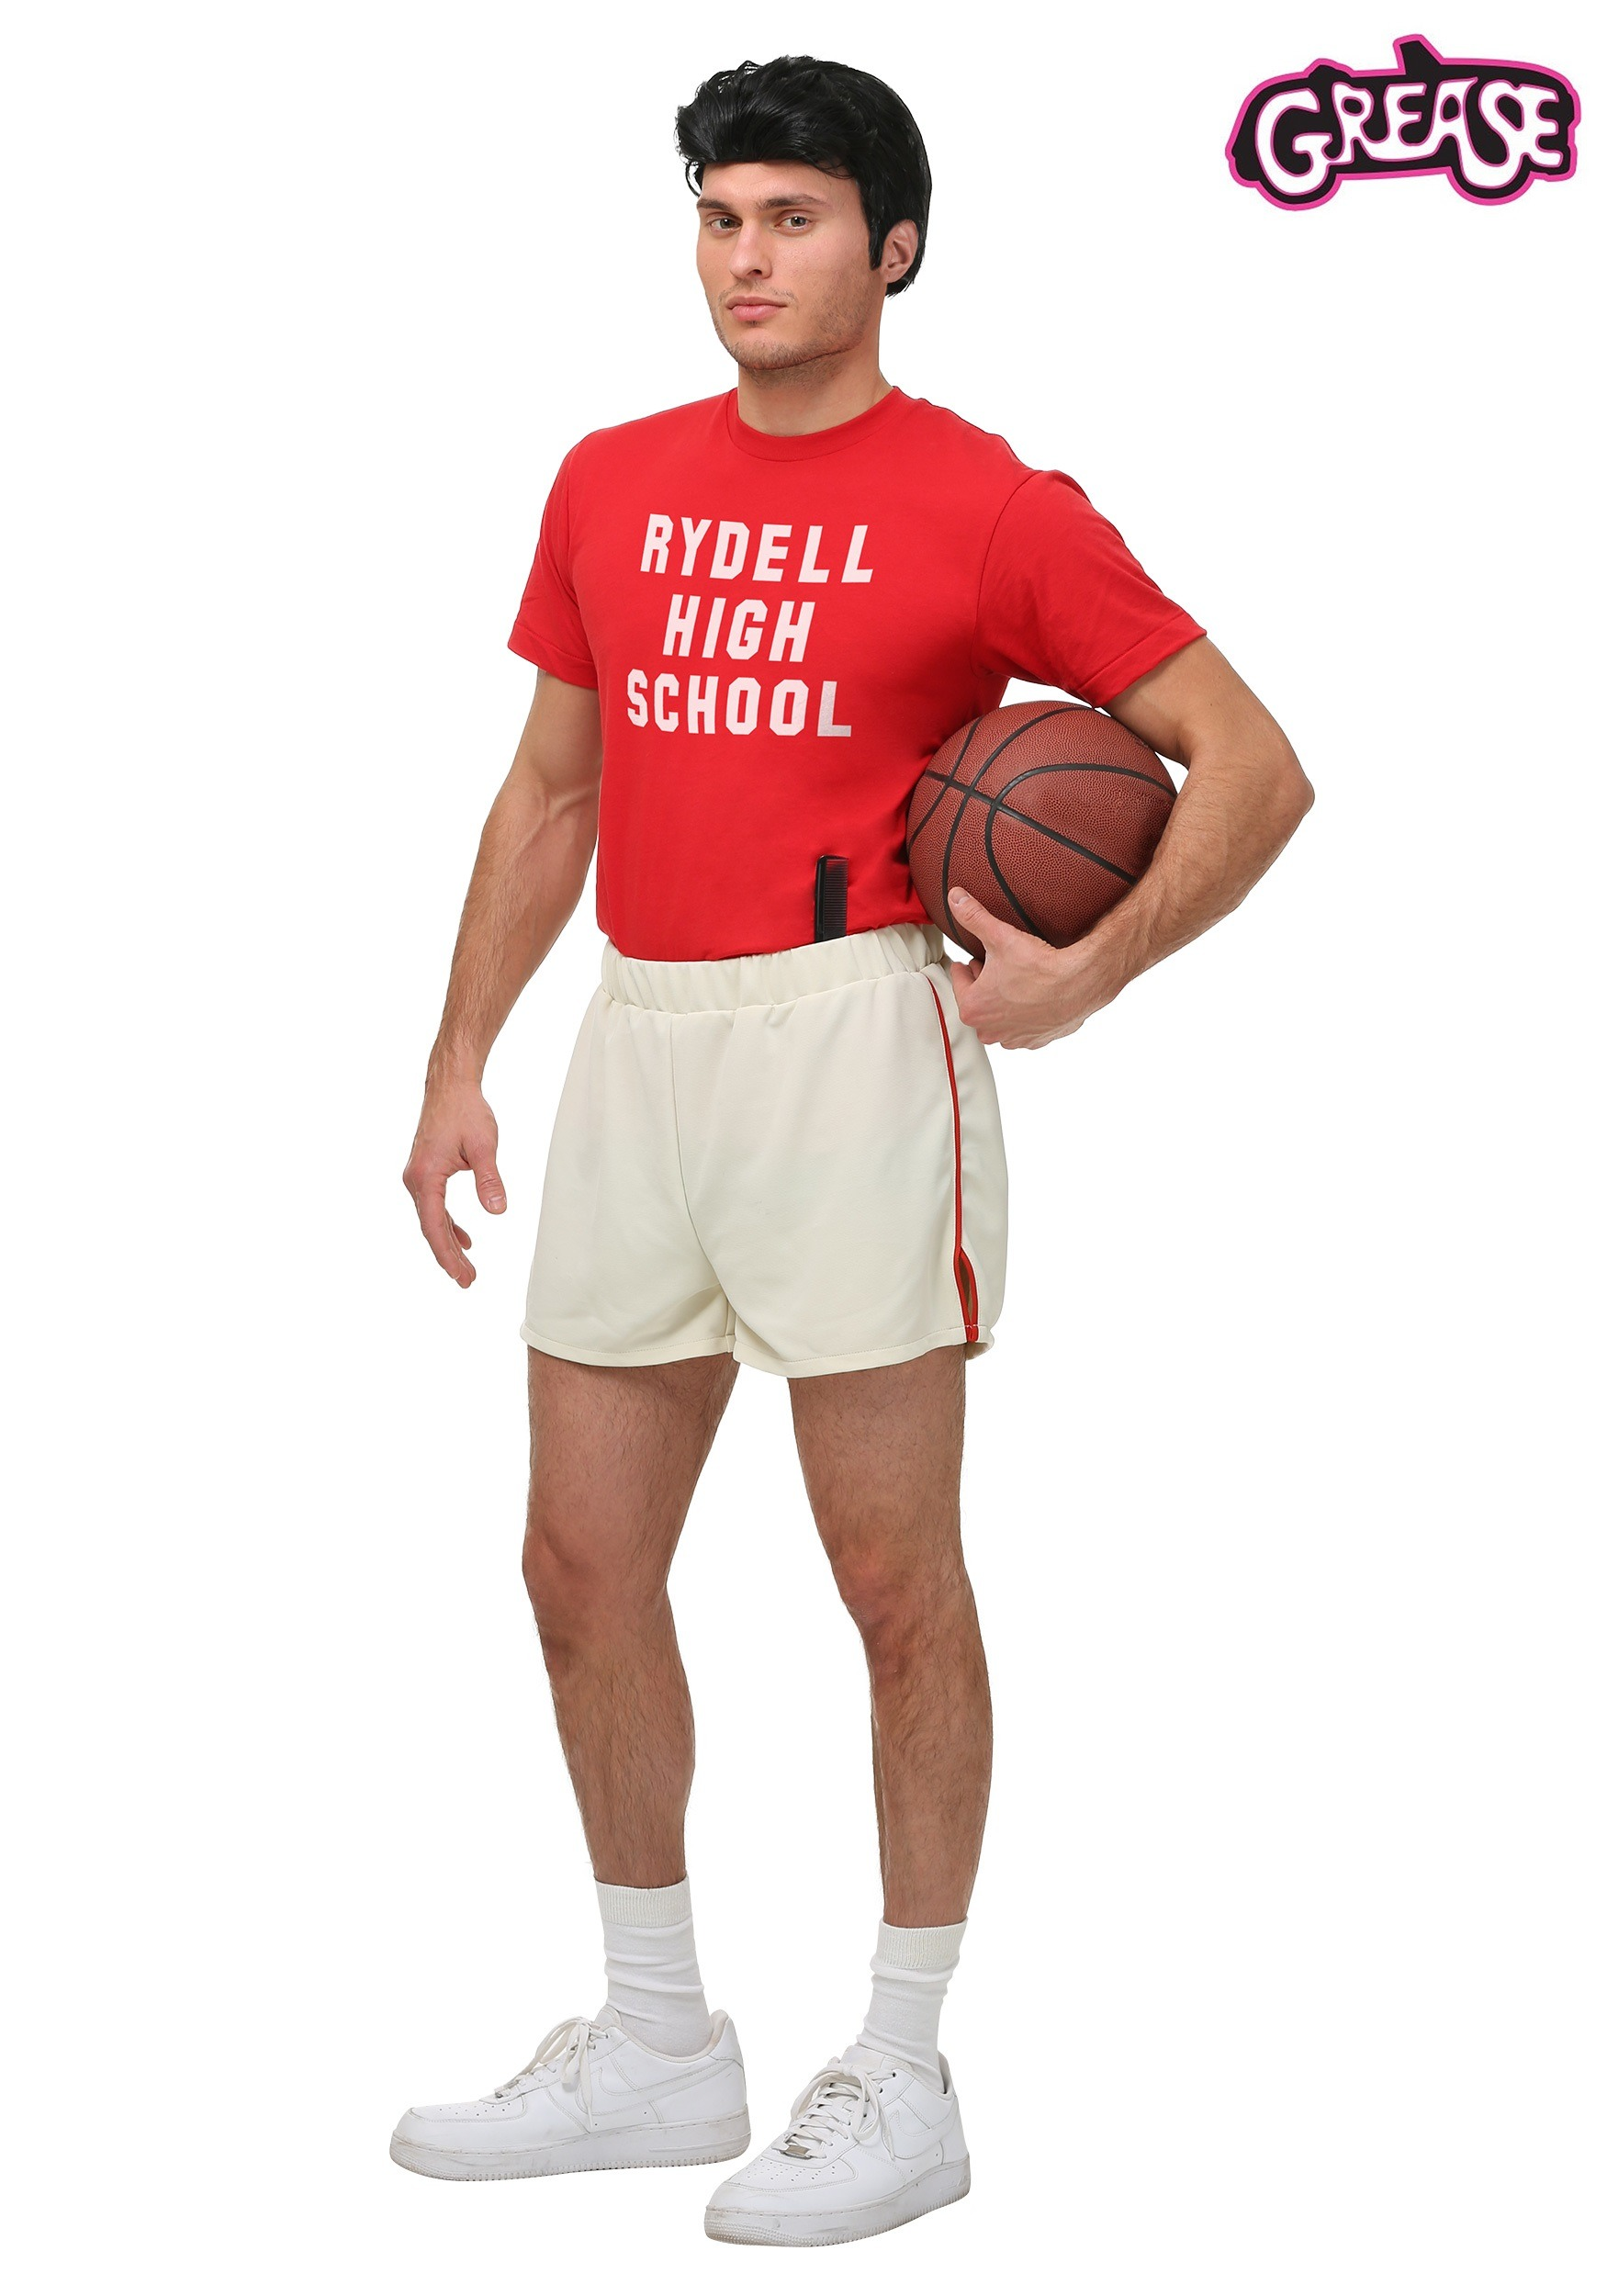 Grease Danny Gym Uniform for Men